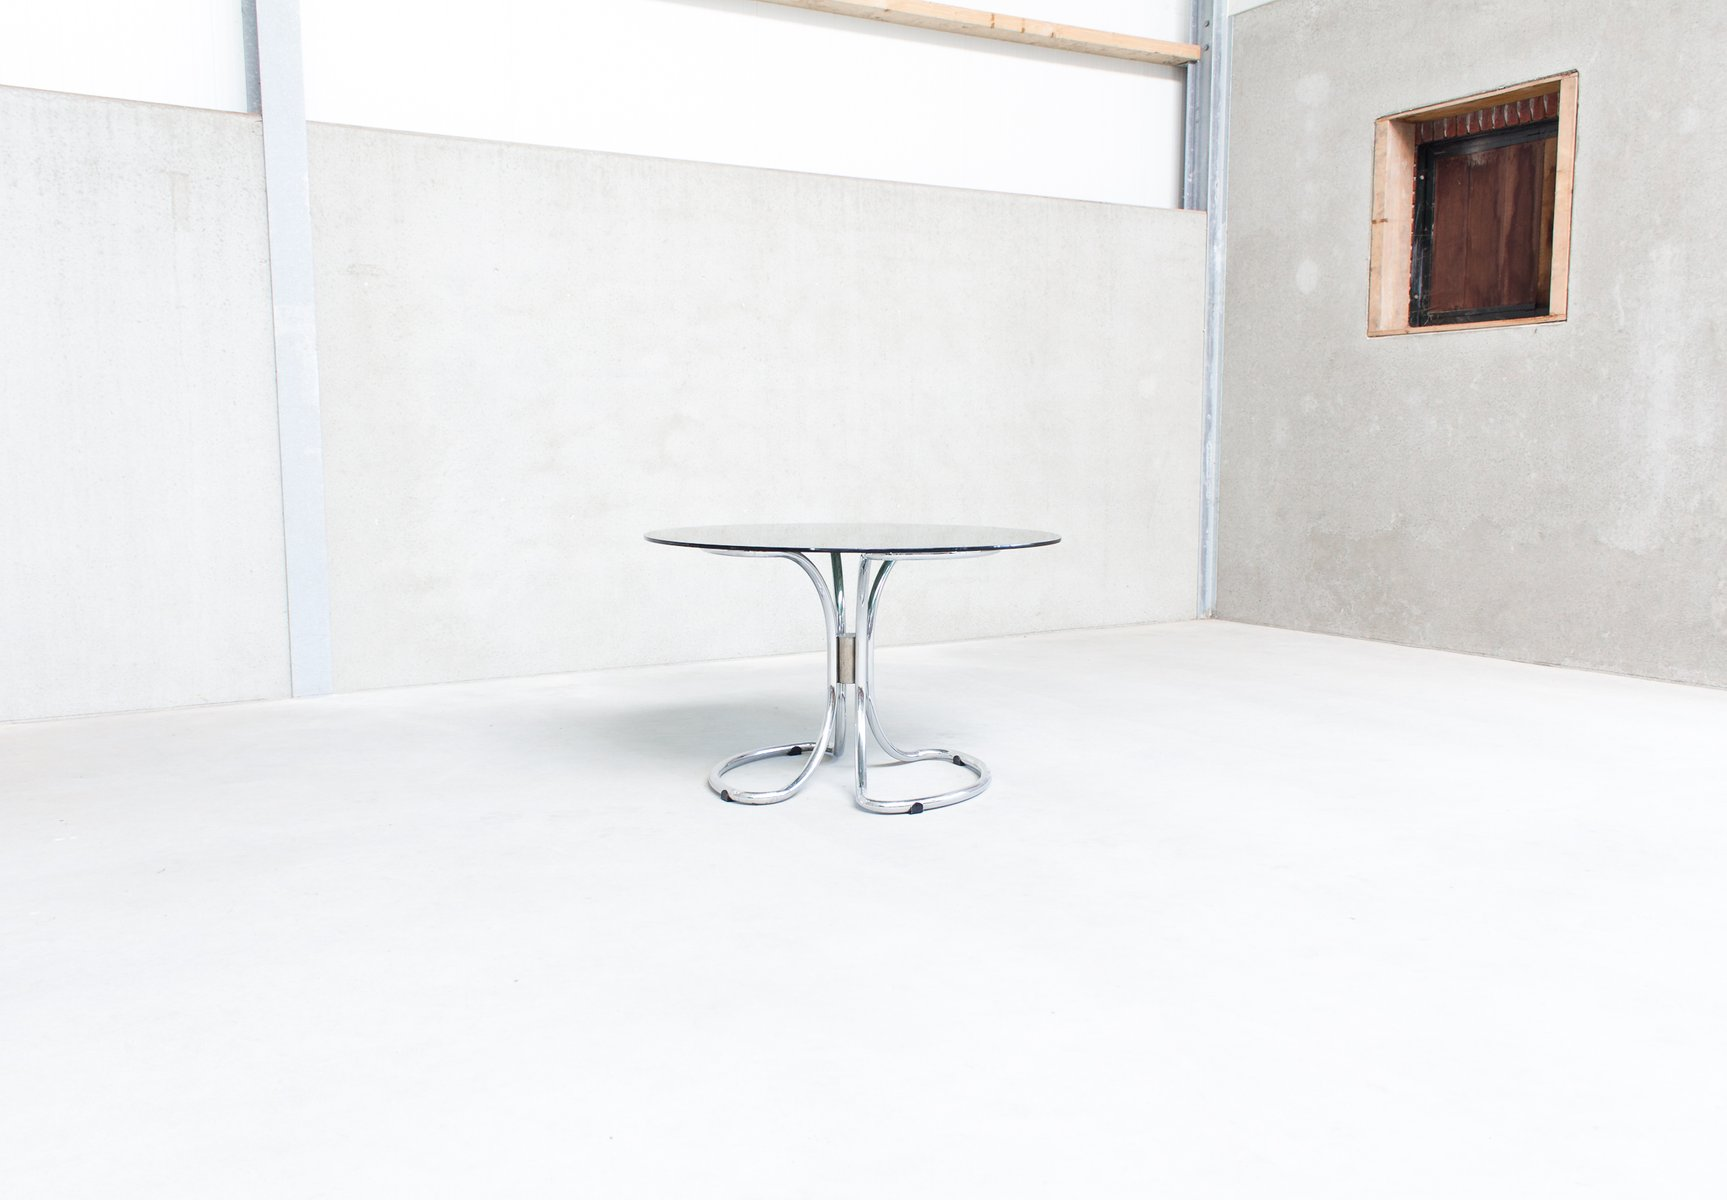 Vintage Italian Chrome & Smoked Glass Dining Table By Giotto